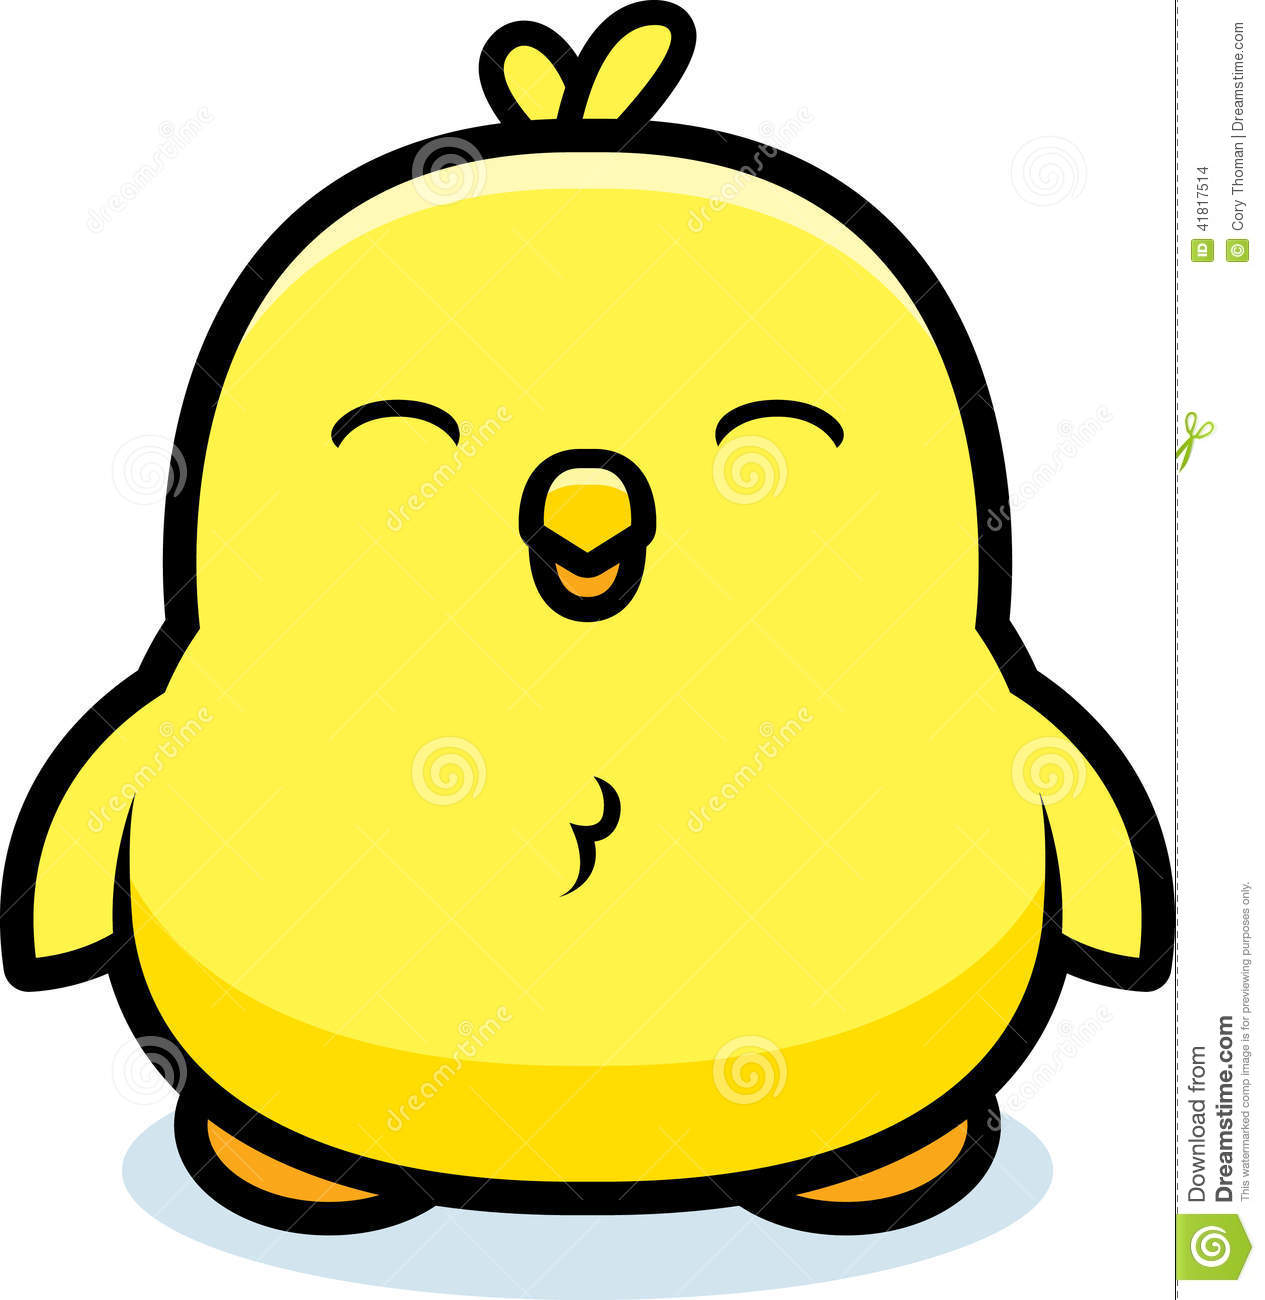 Cartoon Baby Chick Stock Vector - Image: 41817514